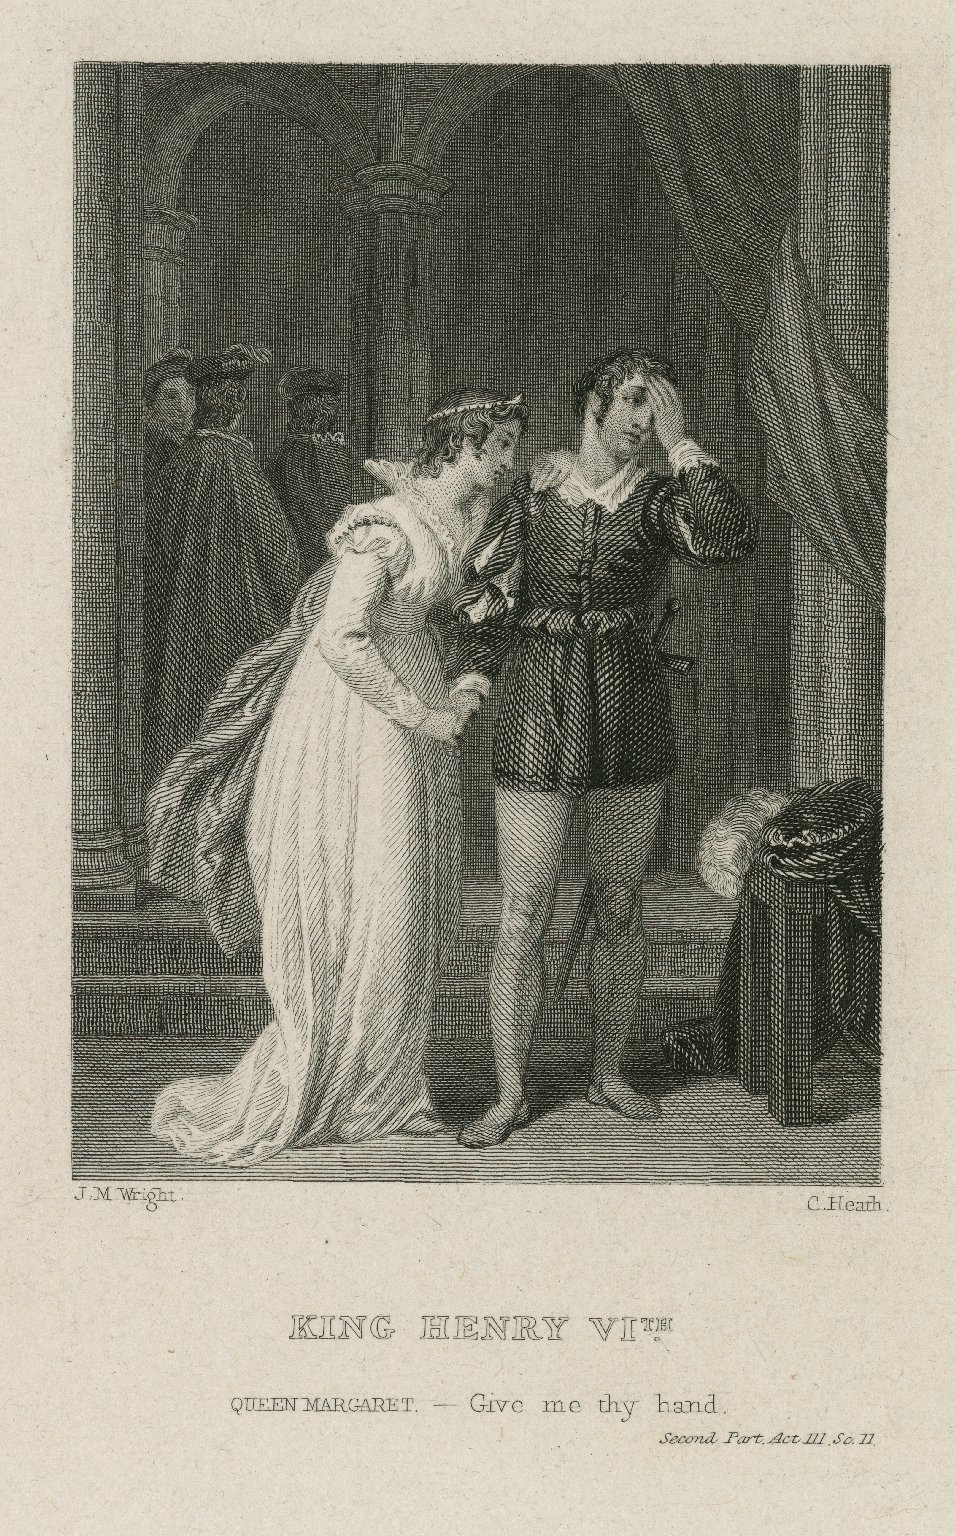 King Henry VIth: Give me thy hand, second part, Act III, sc. II [graphic] / J.M. Wright ; C. Heath.